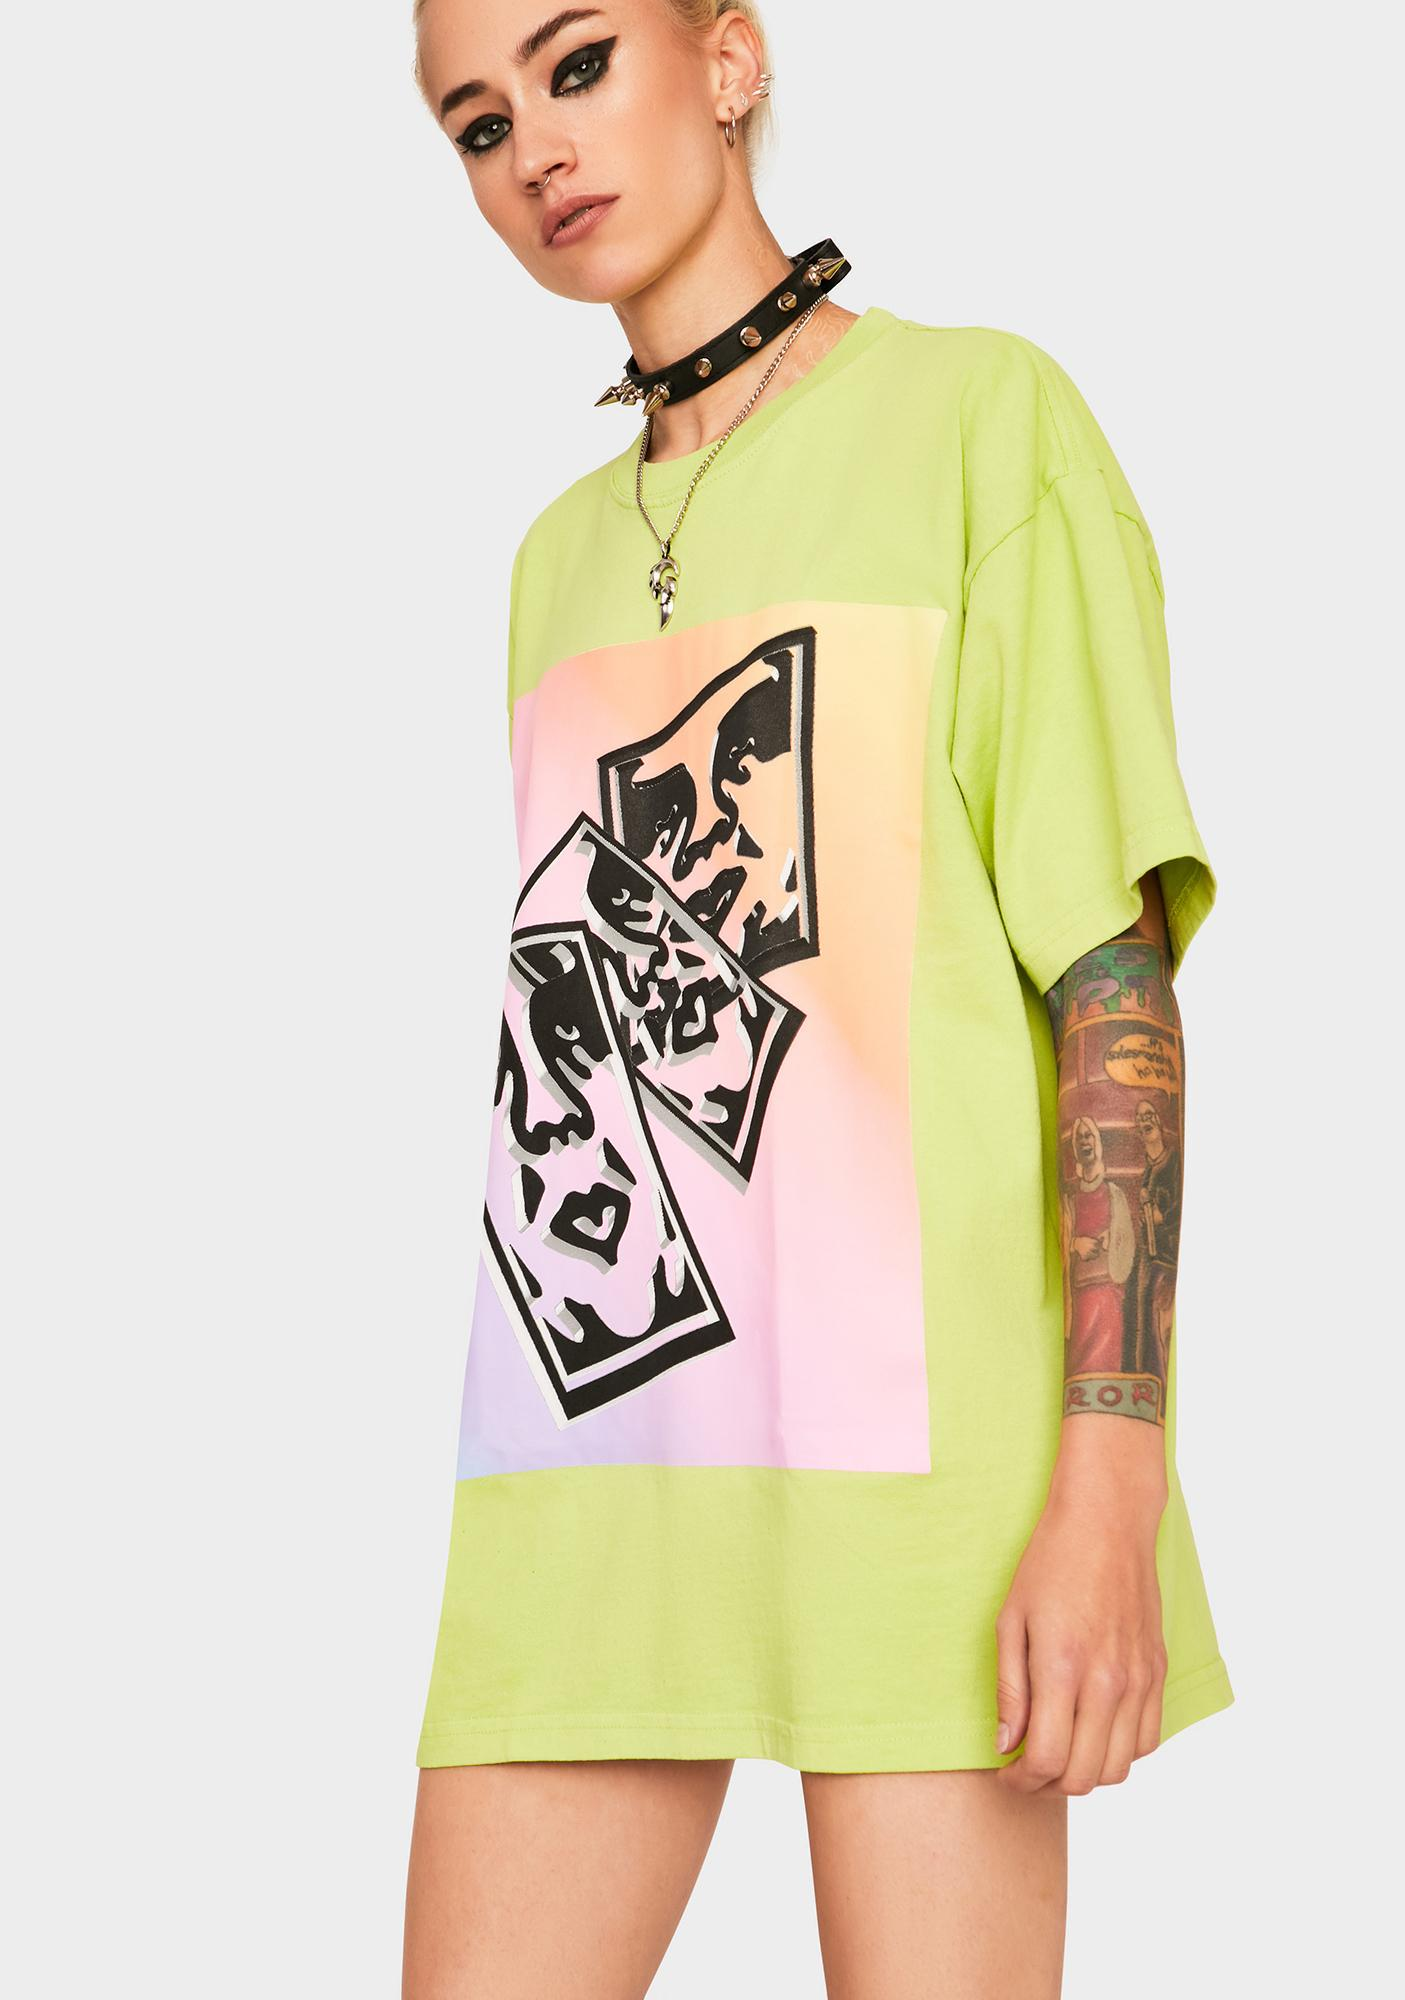 Obey Chaos & Entropy Graphic Tee